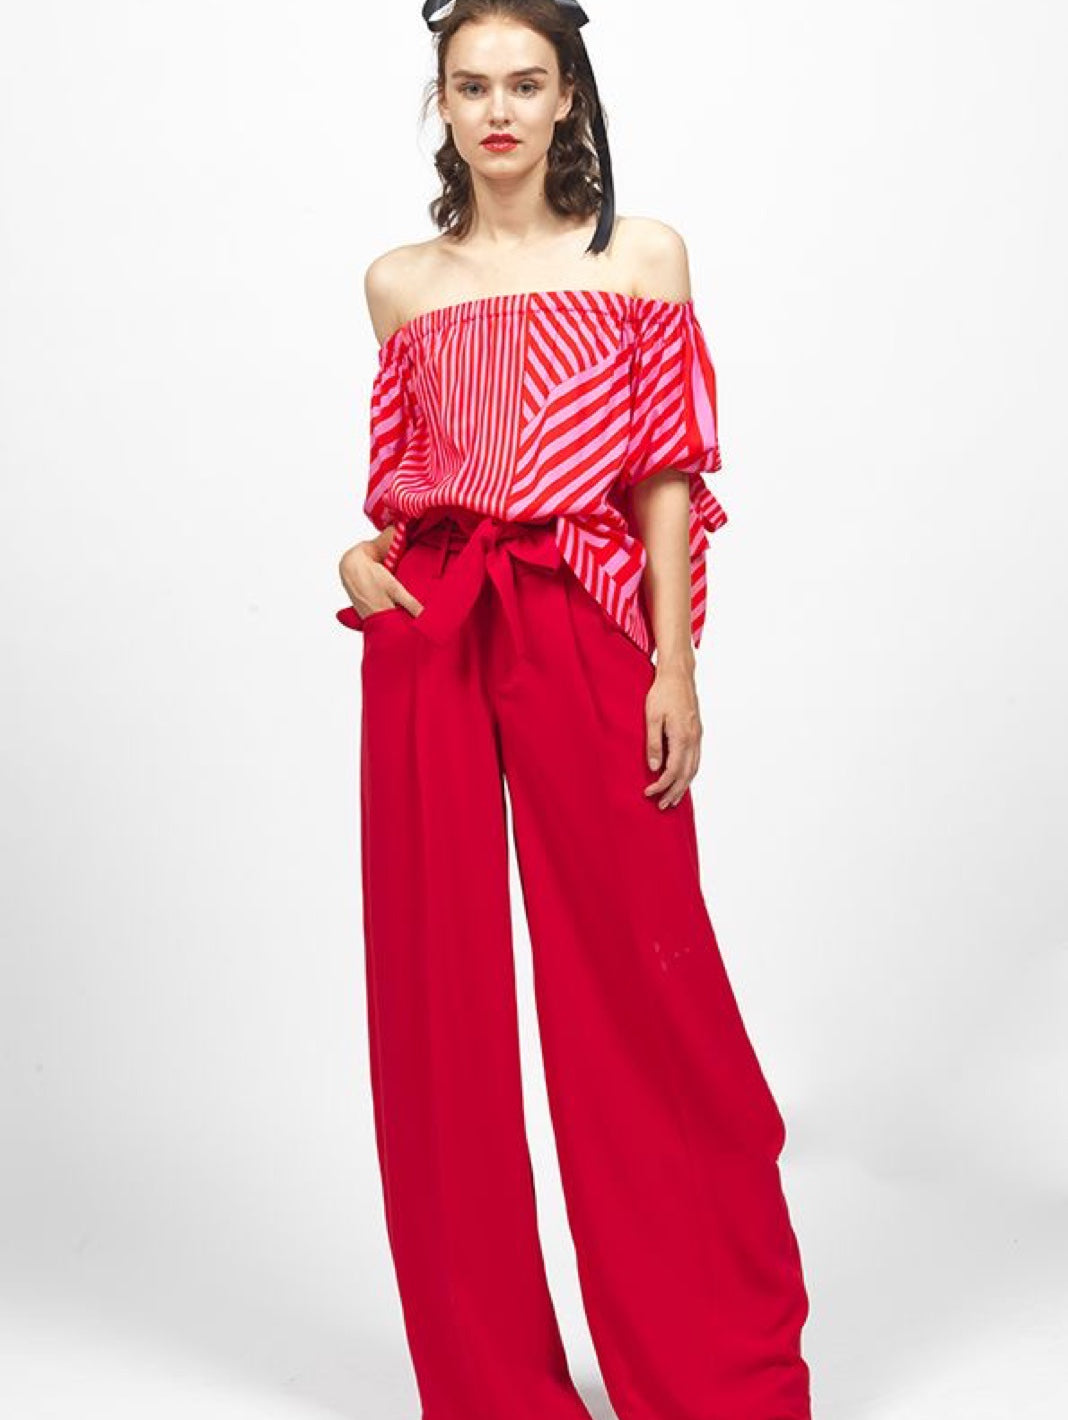 Off-Shoulder Stripes Print Top - The Bobby Boga